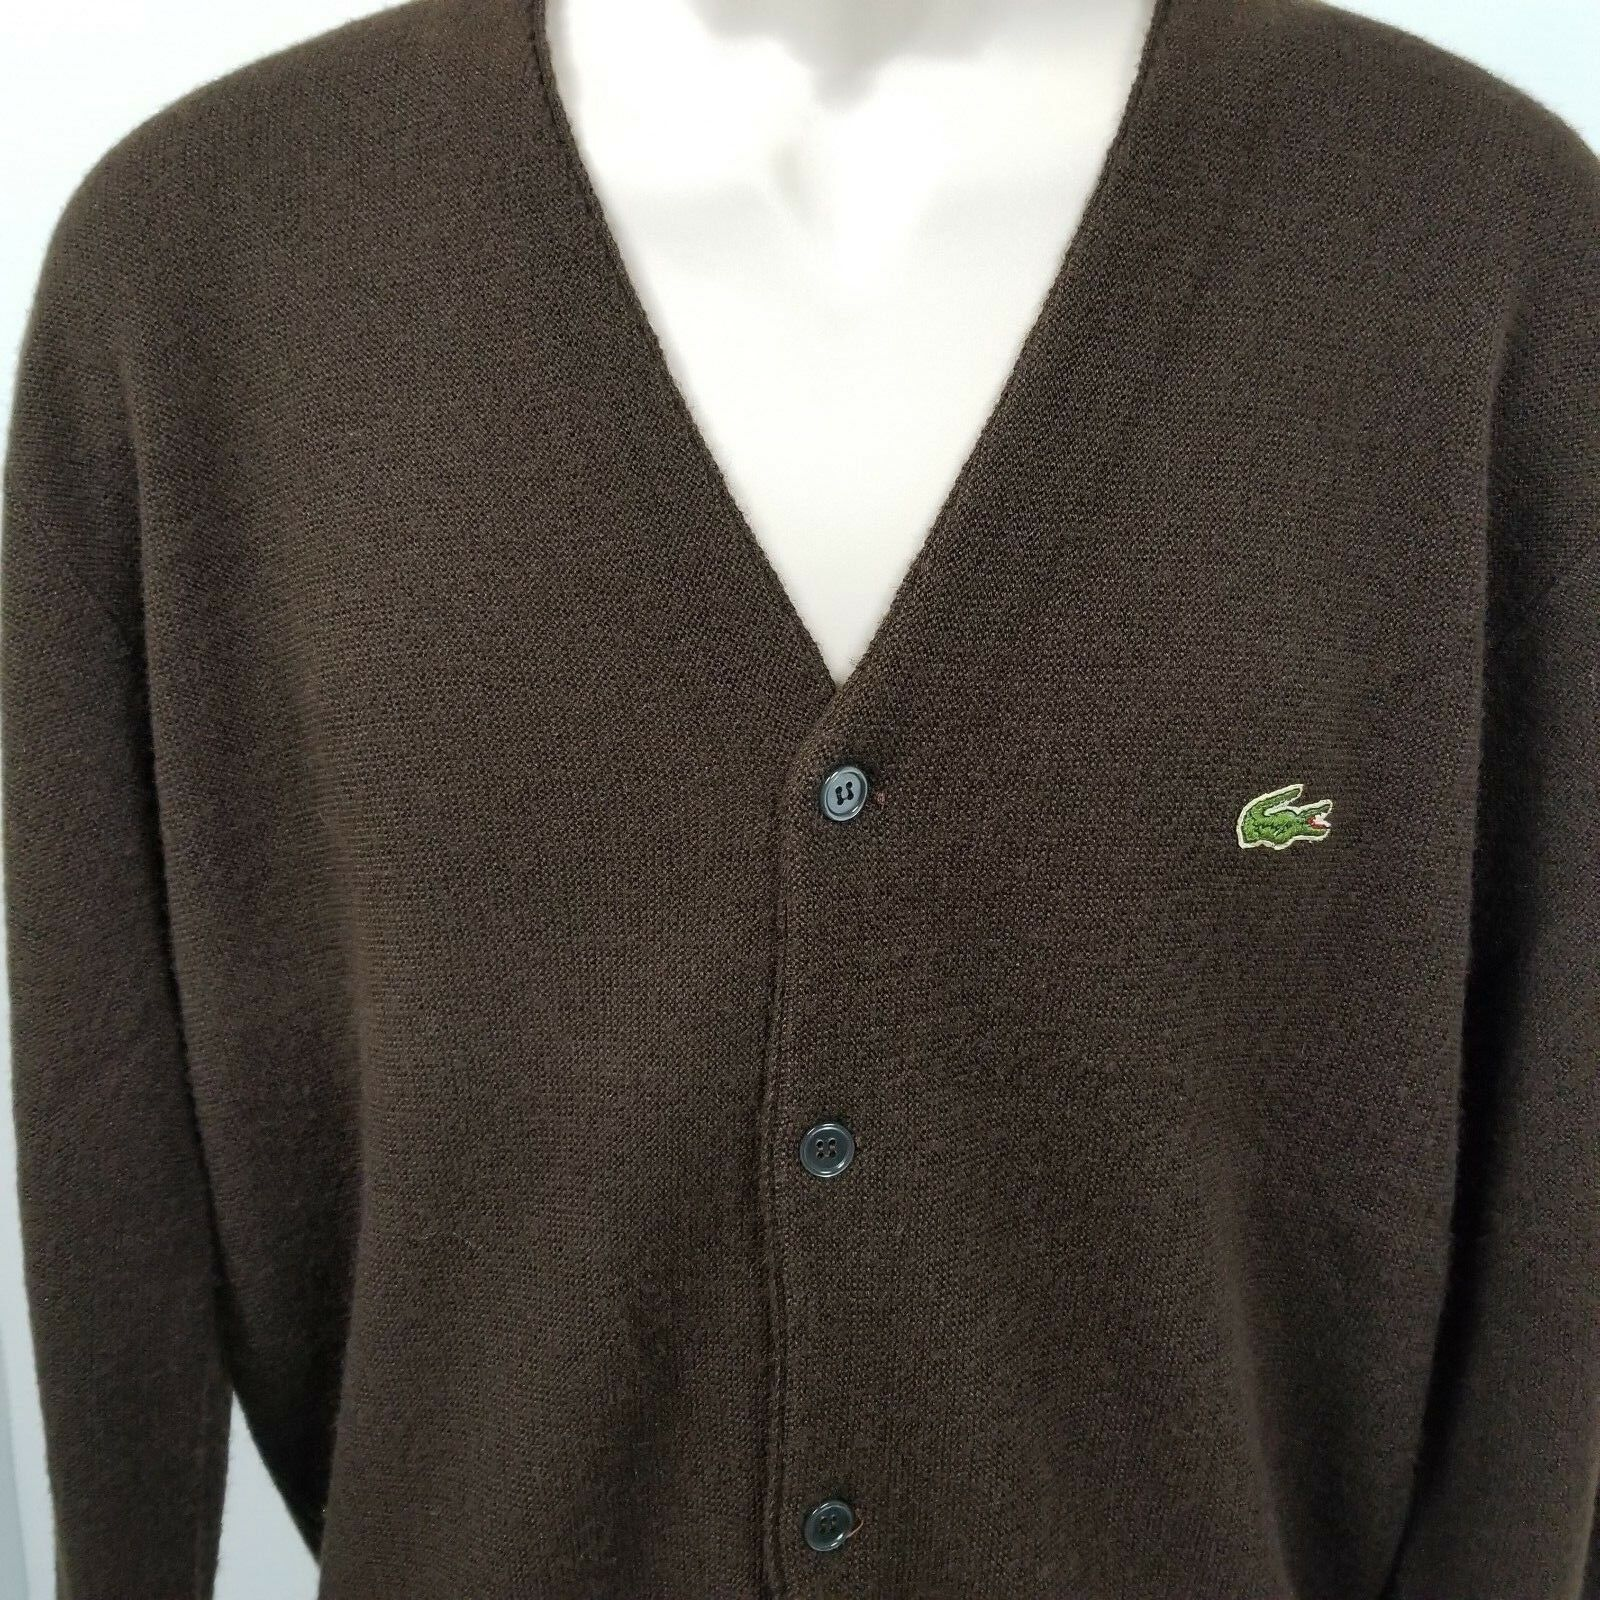 Lacoste Men's Cardigan Vintage 90s USA Brown Sweater Size L